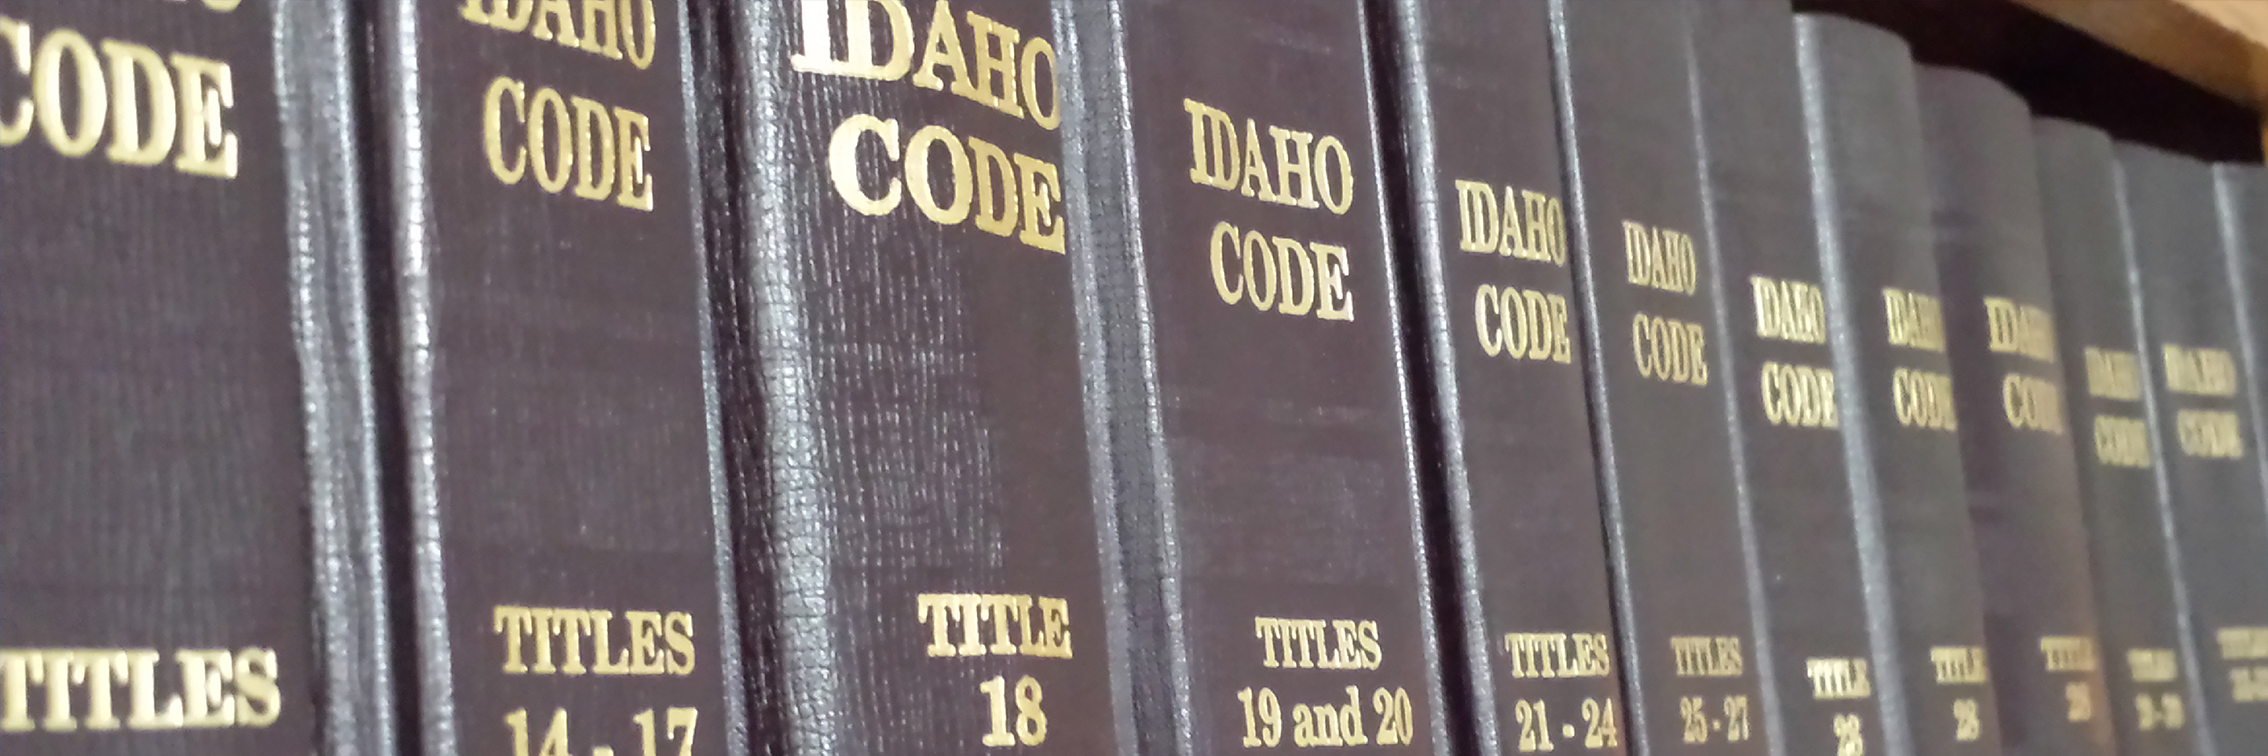 Idaho Business Law, Employment Law, and Labor Law Attorneys